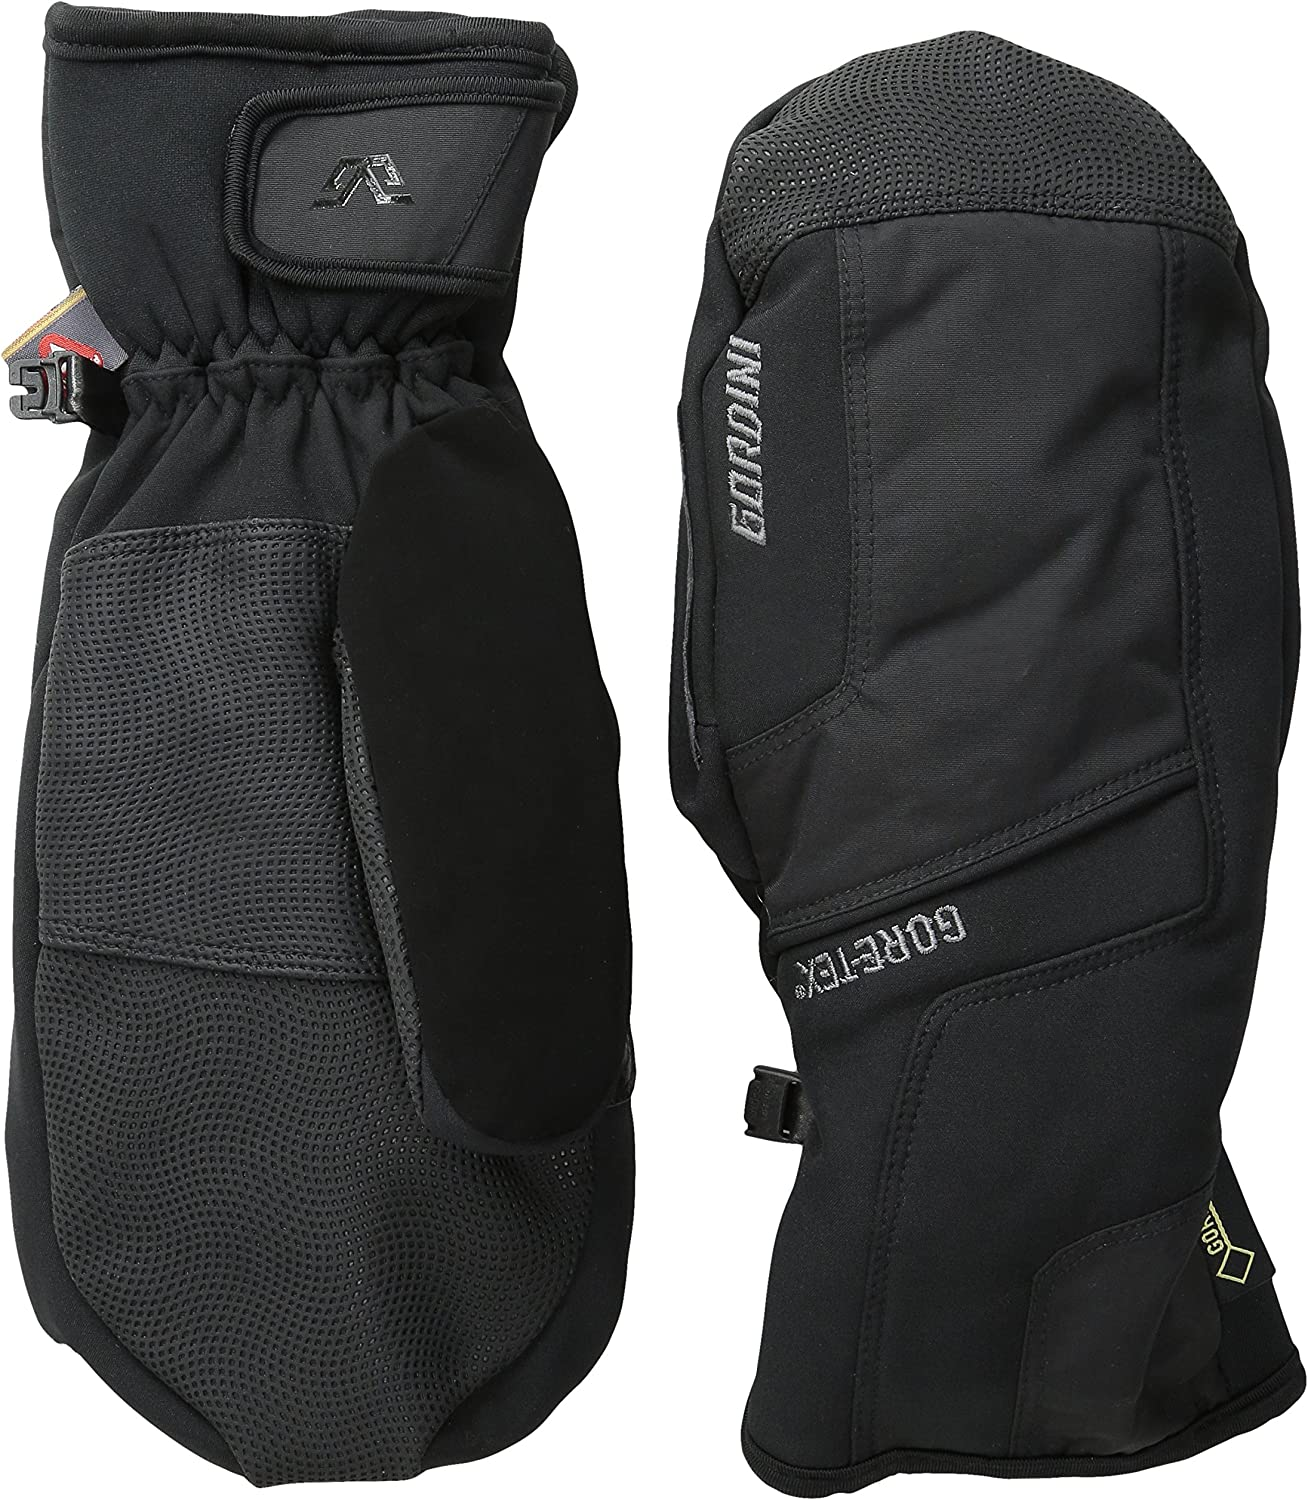 Gordini Men's Challenge Mitts XIII Special price for a limited Max 90% OFF time